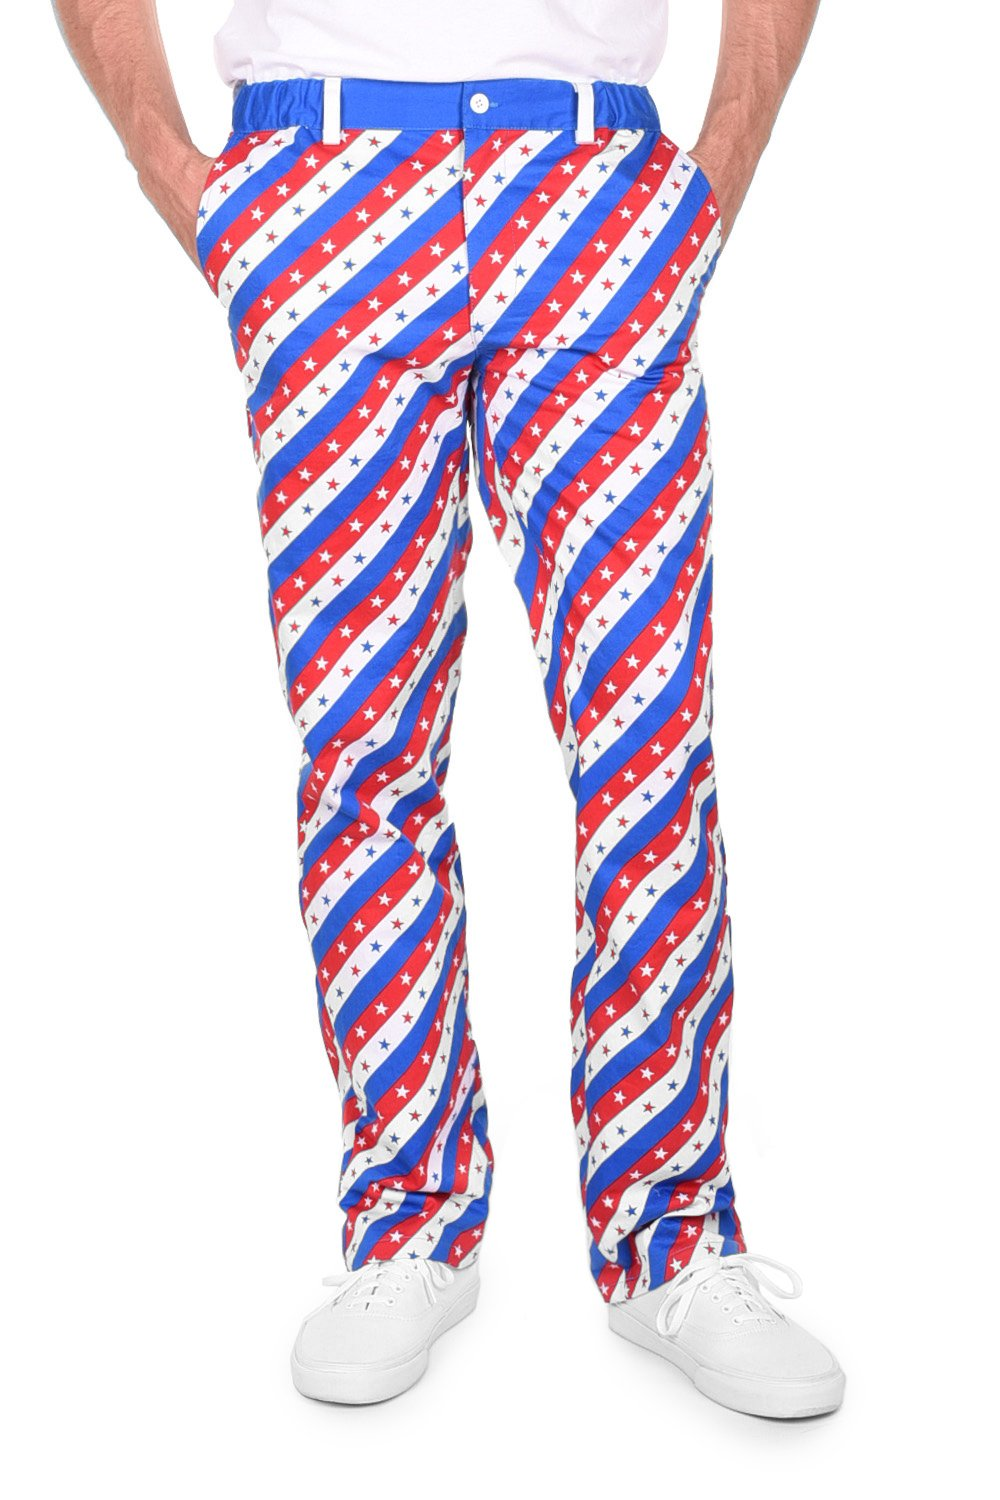 bc9f4679e7018 Tipsy Elves Men's Red White and Blue Patriotic USA Pants - American Flag  Golf Pants